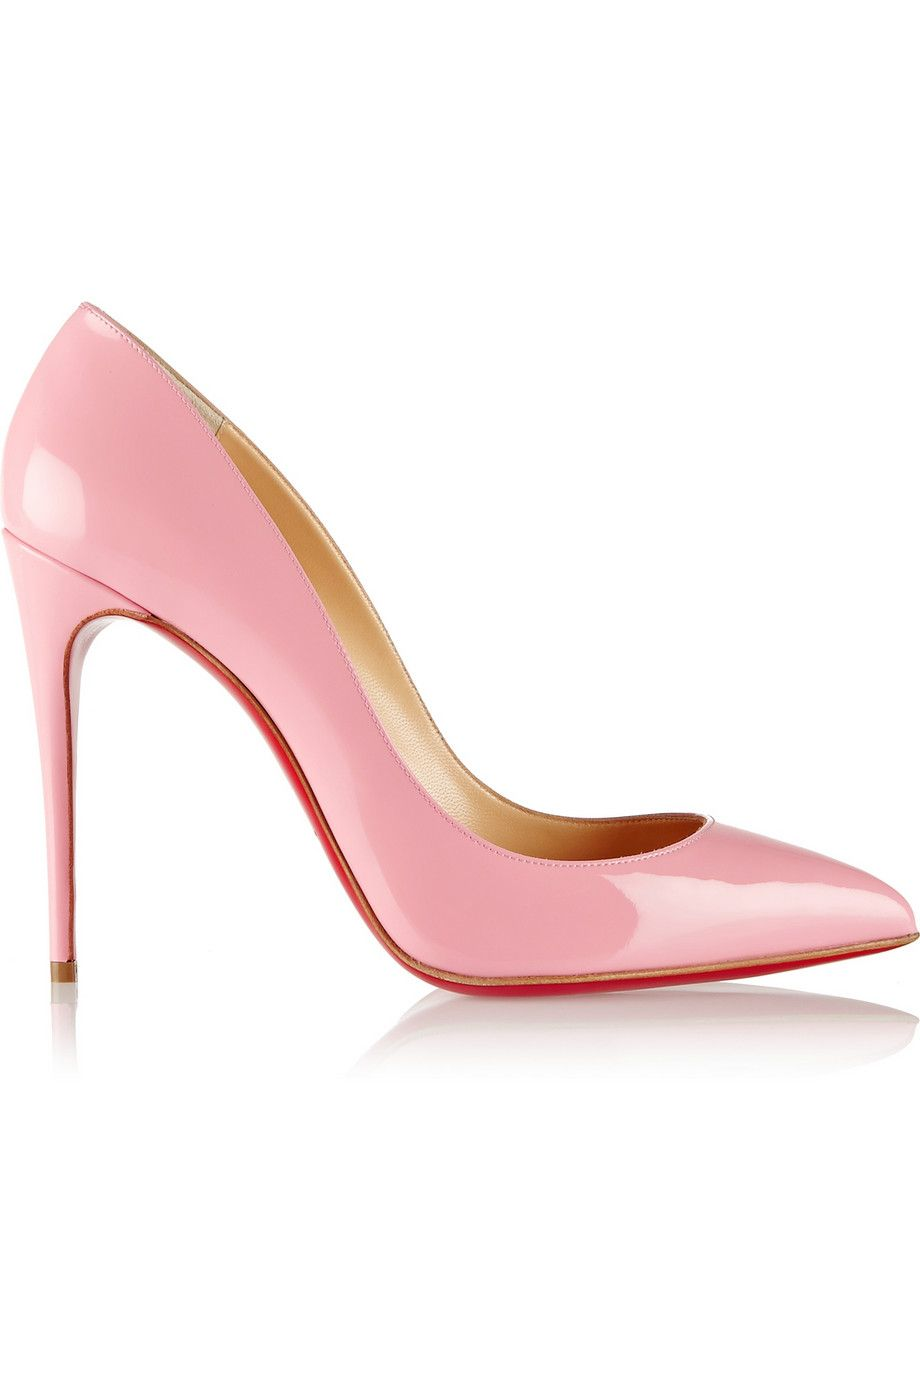 c550f463450 Christian Louboutin - Pigalle Follies 100 patent-leather pumps ...